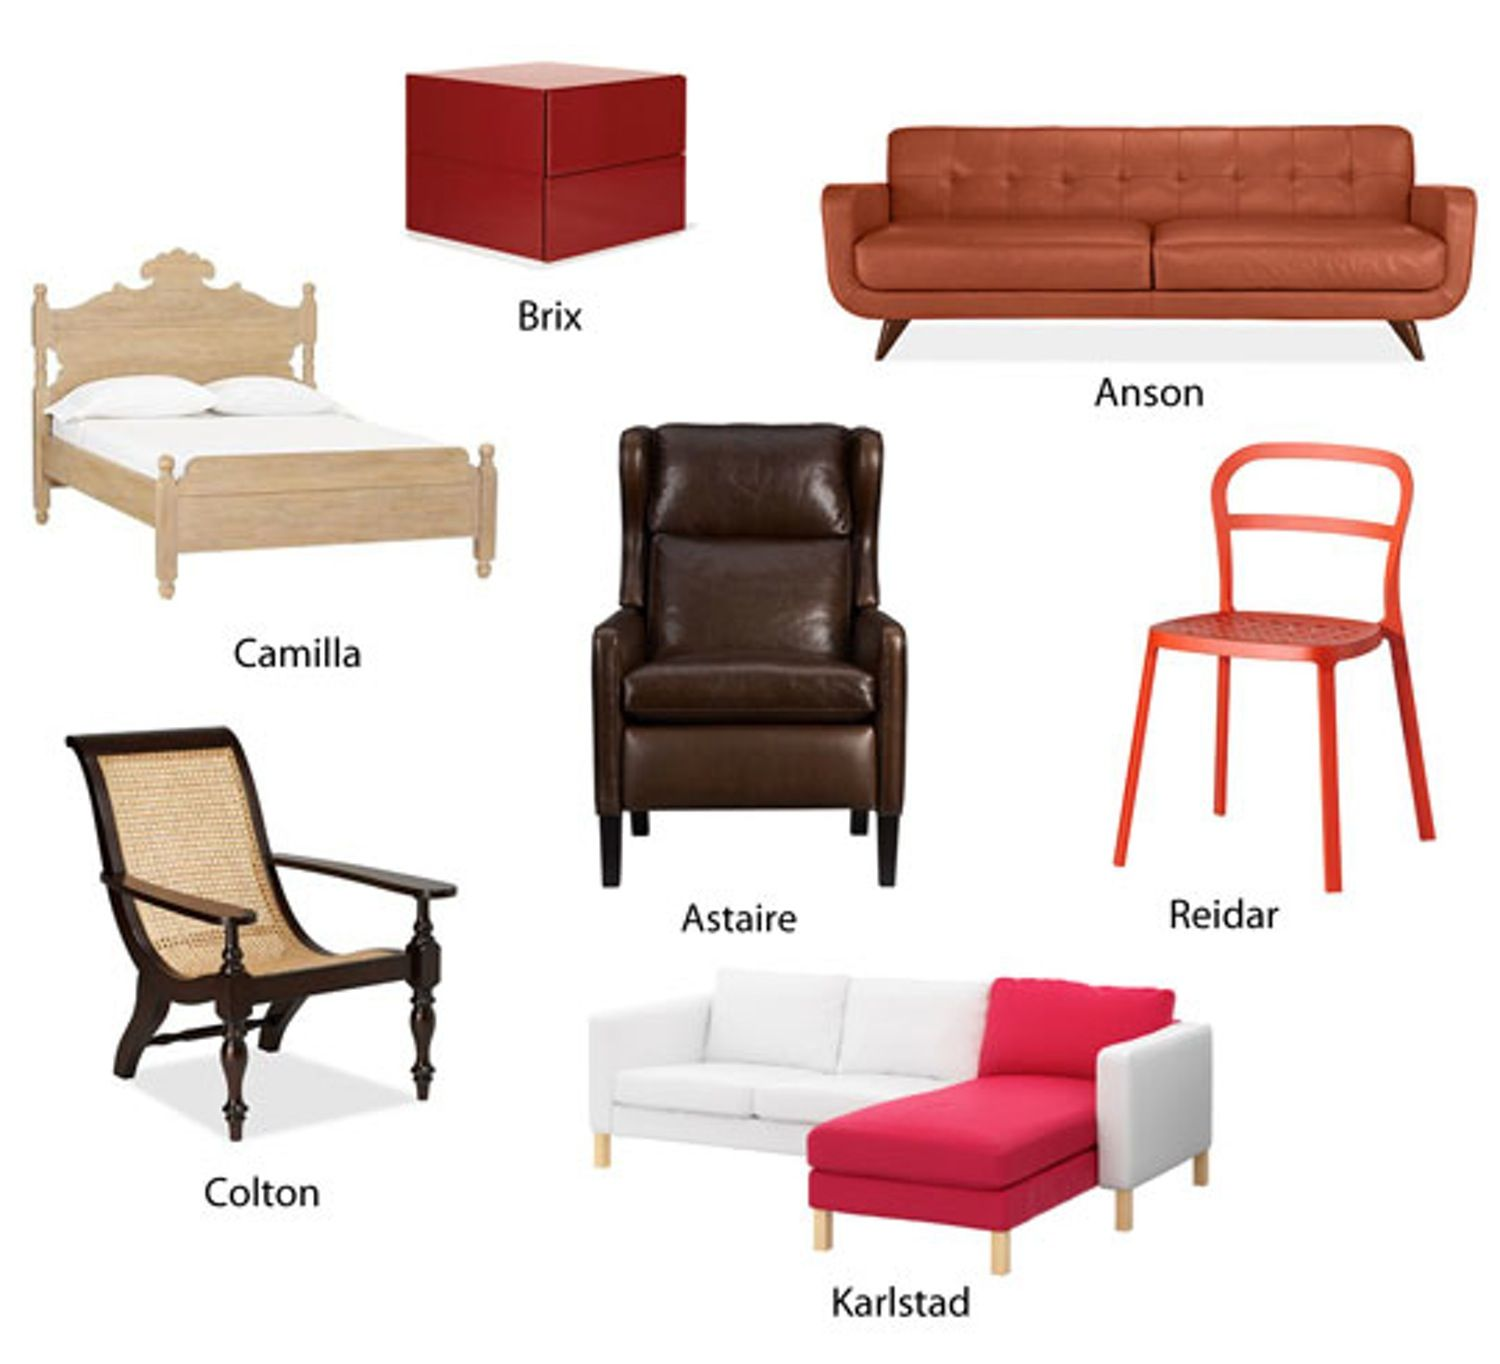 Bedroom furniture names - How Retailers Give Names To Furniture